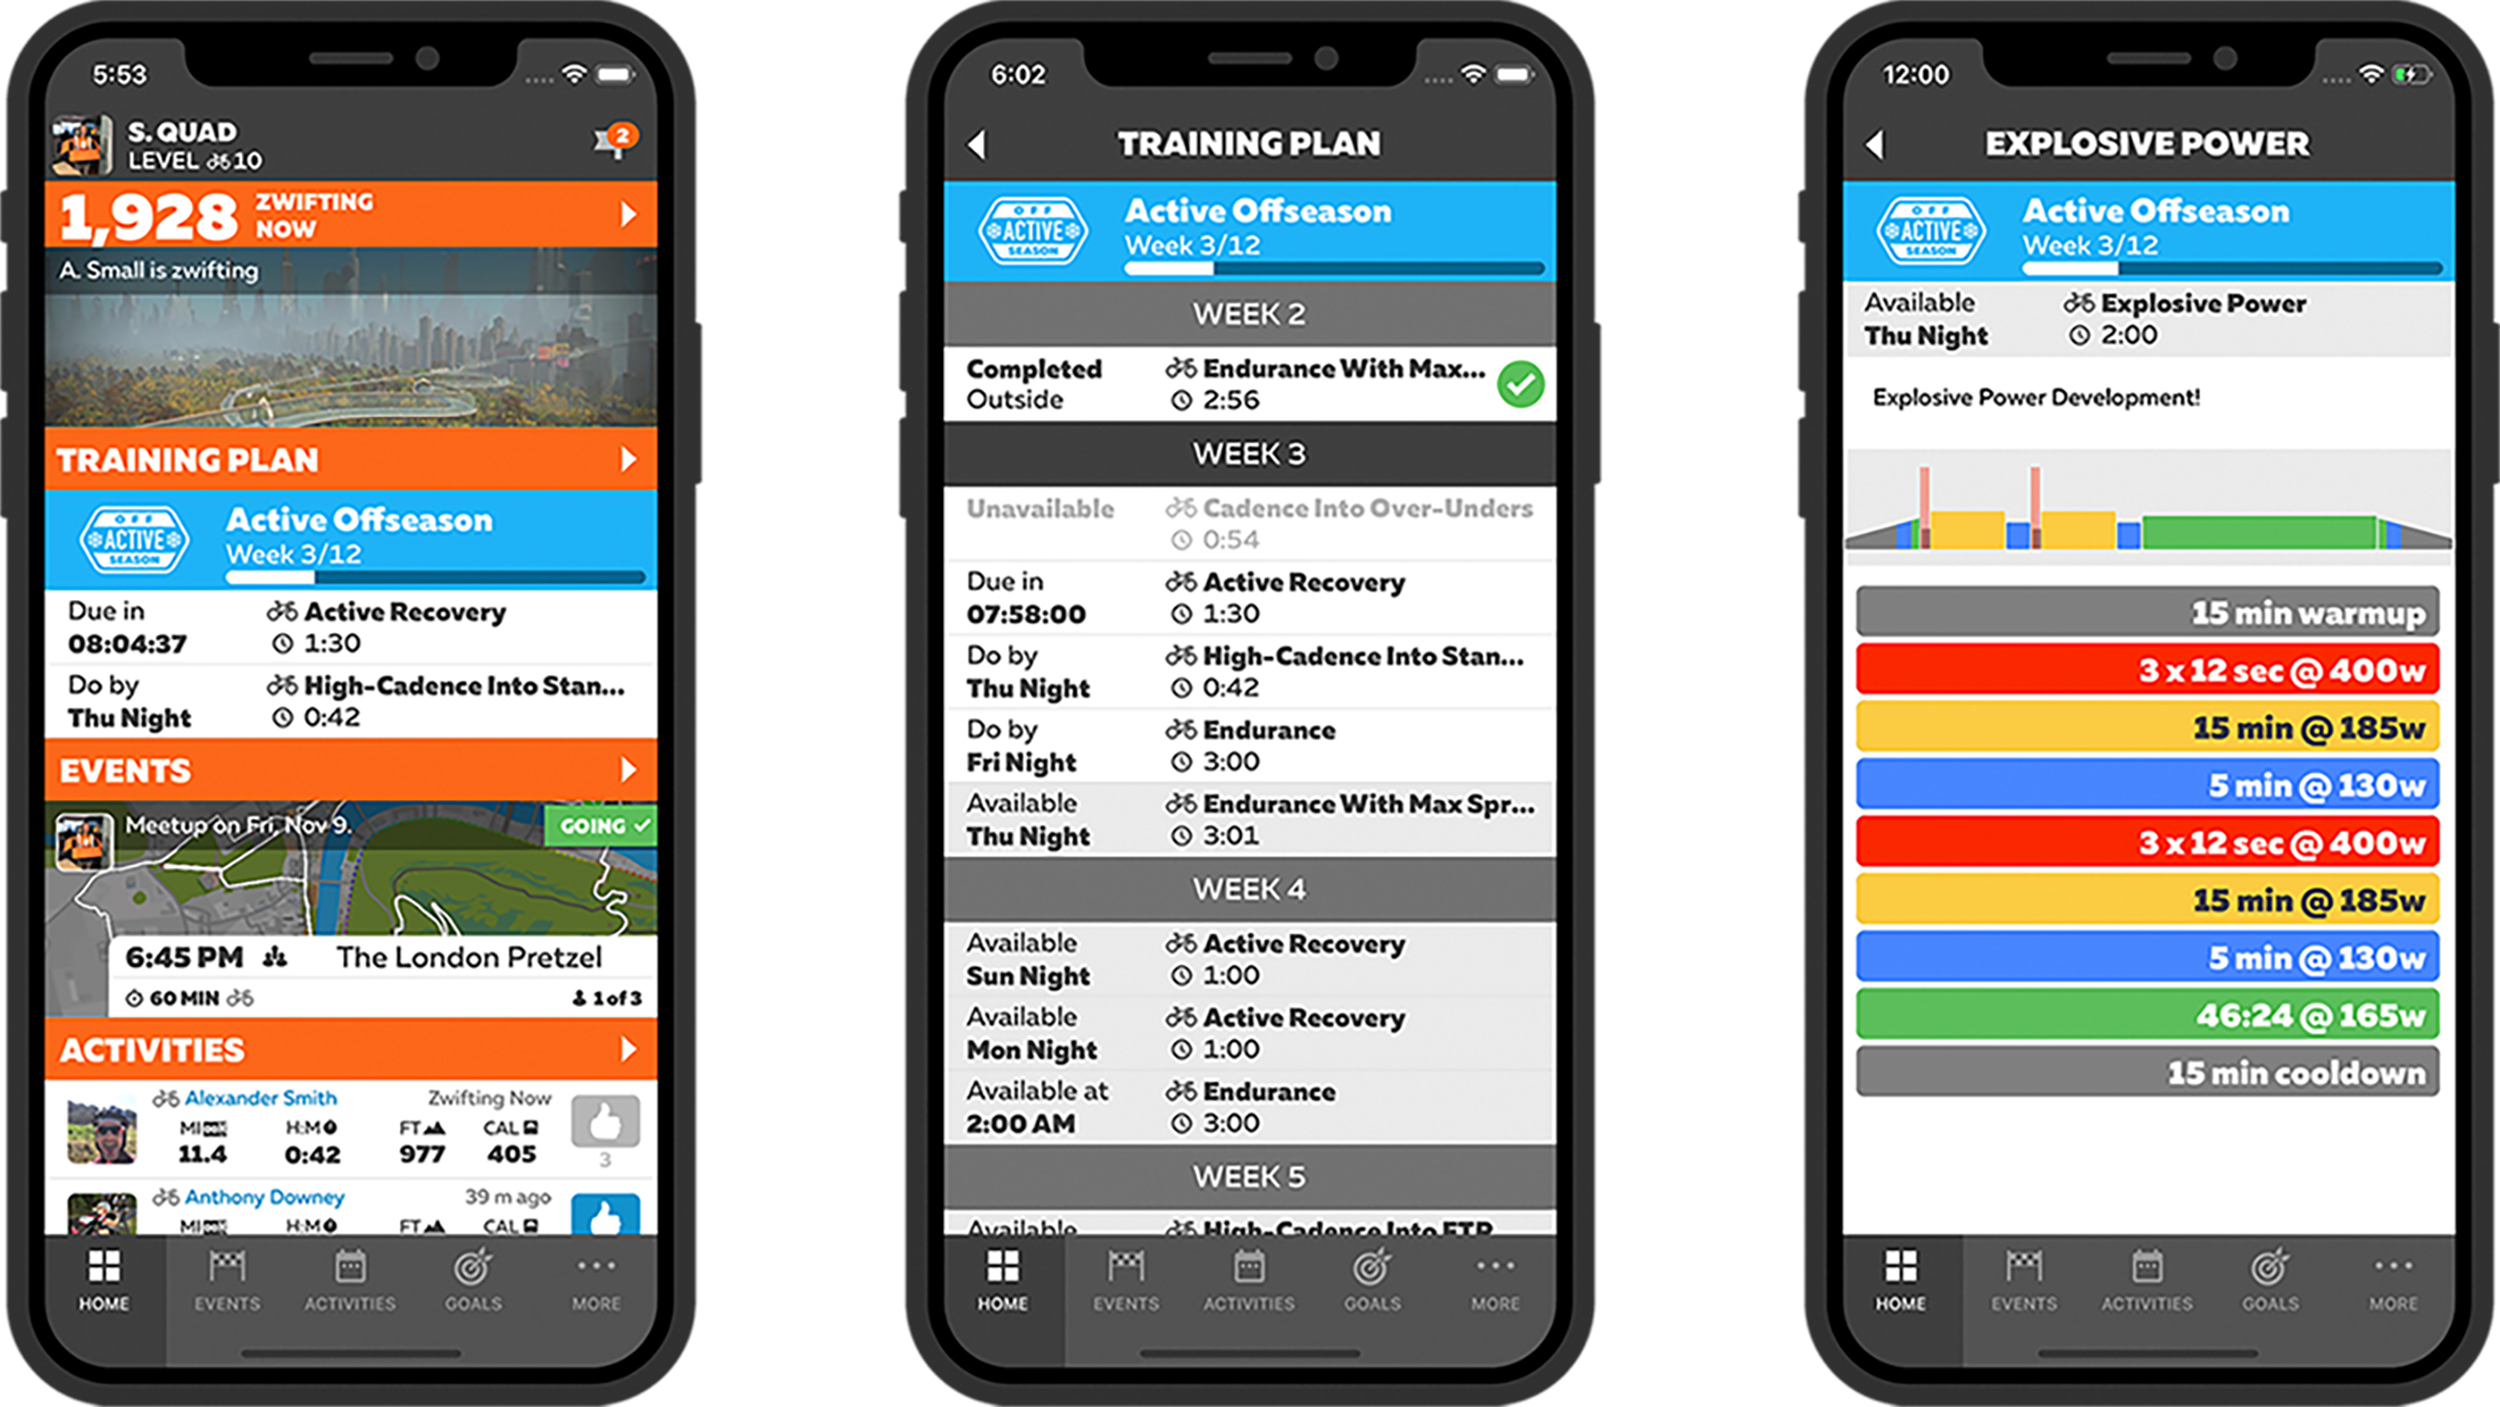 Zwift Companion 3.0 Application Release Full Training Plan View